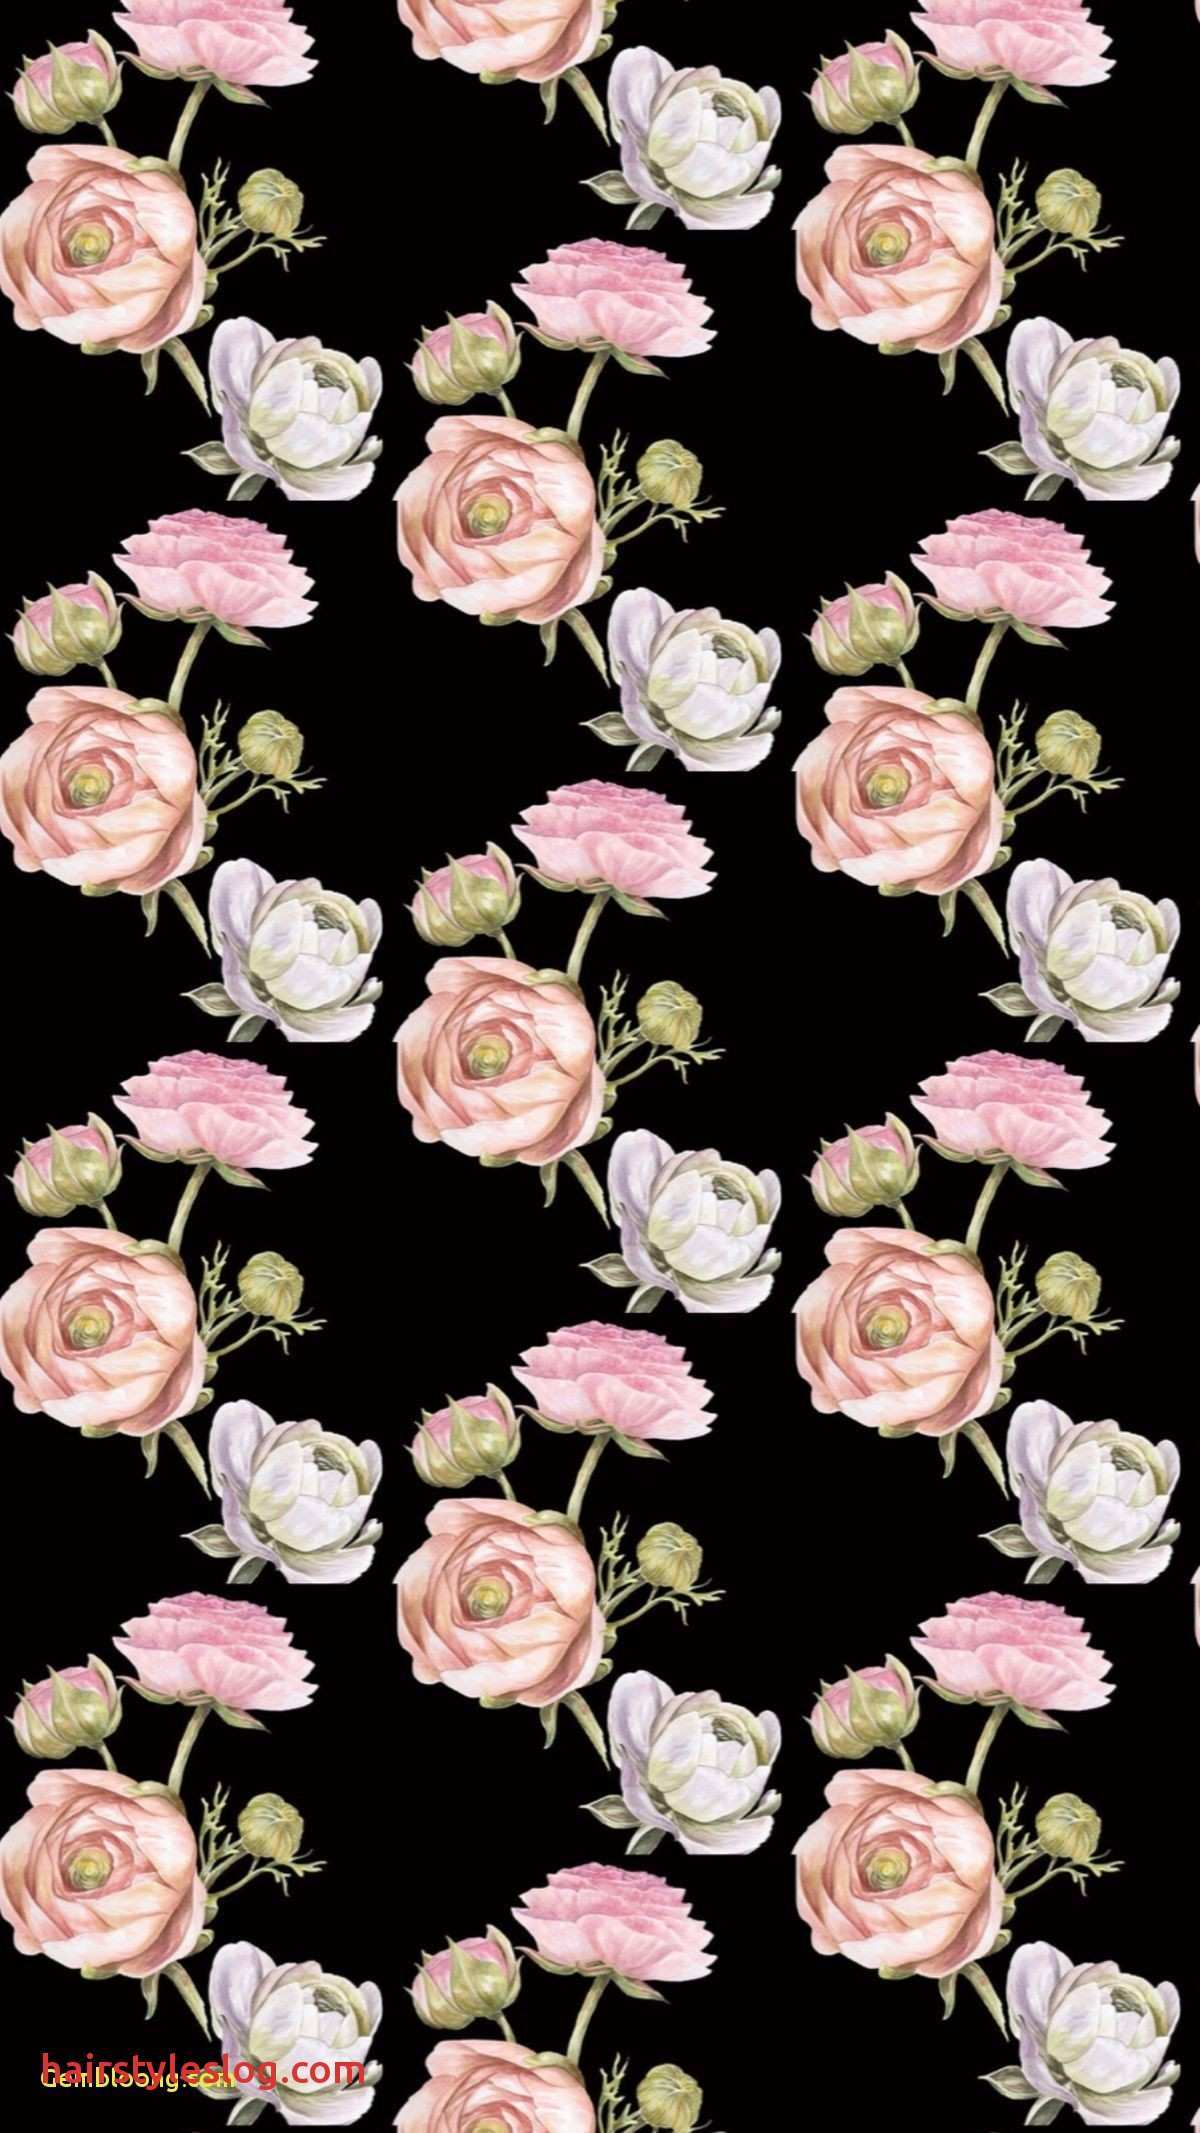 Aesthetic Black Wallpaper With Rose